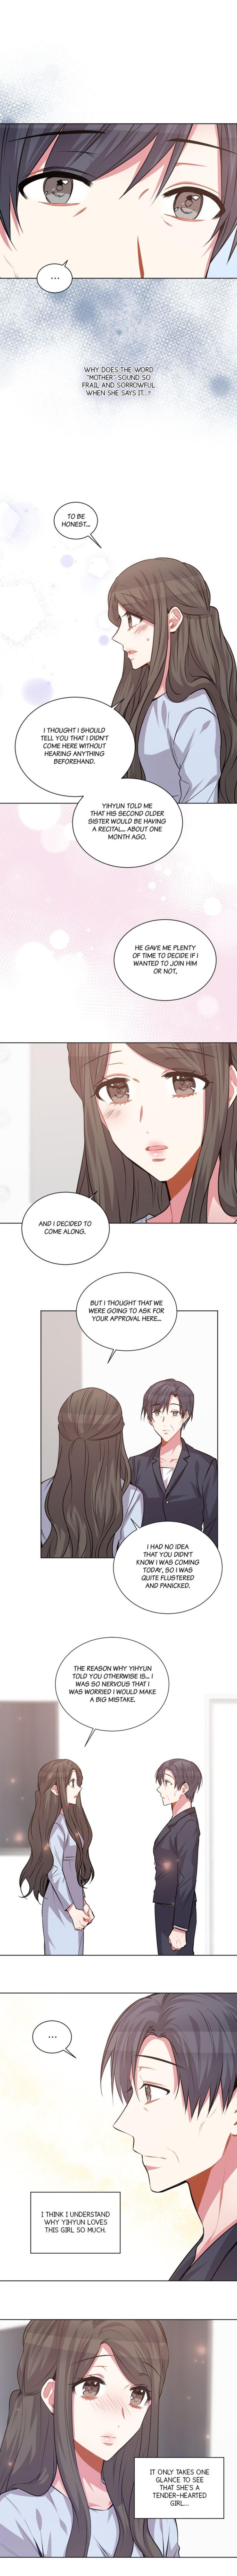 I Found Somebody To Love Chapter 70 page 2 - Mangakakalots.com